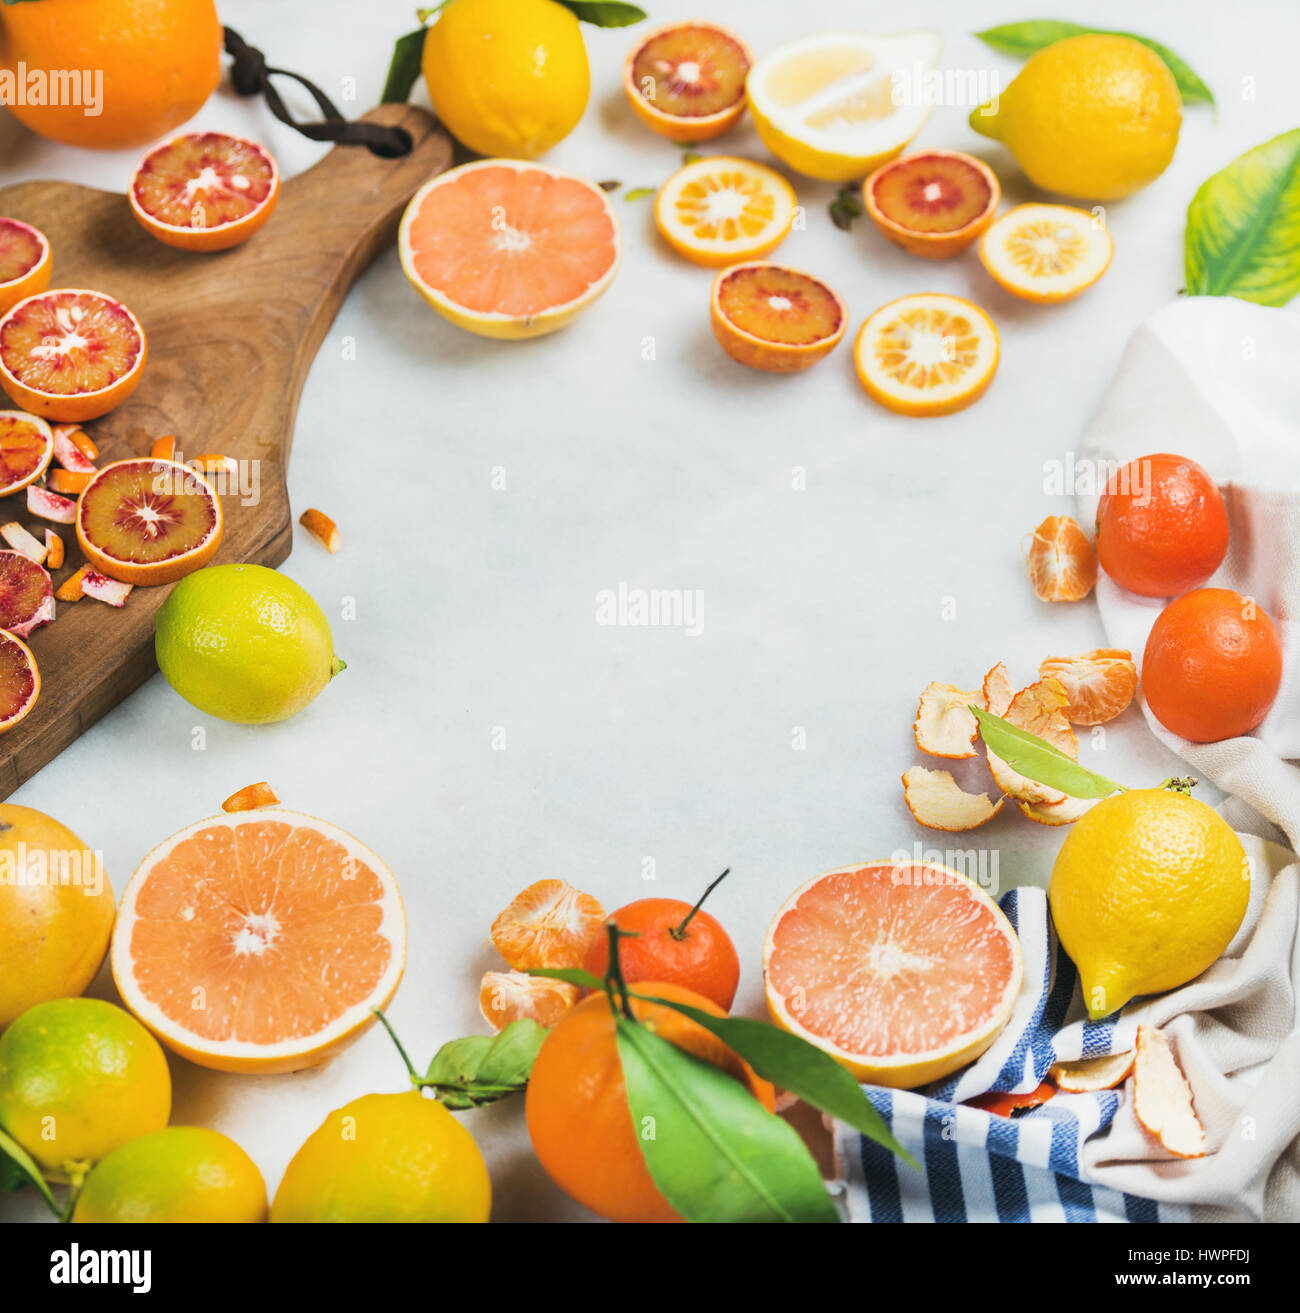 Citrus fruits slices on wooden board over grey marble background Stock Photo